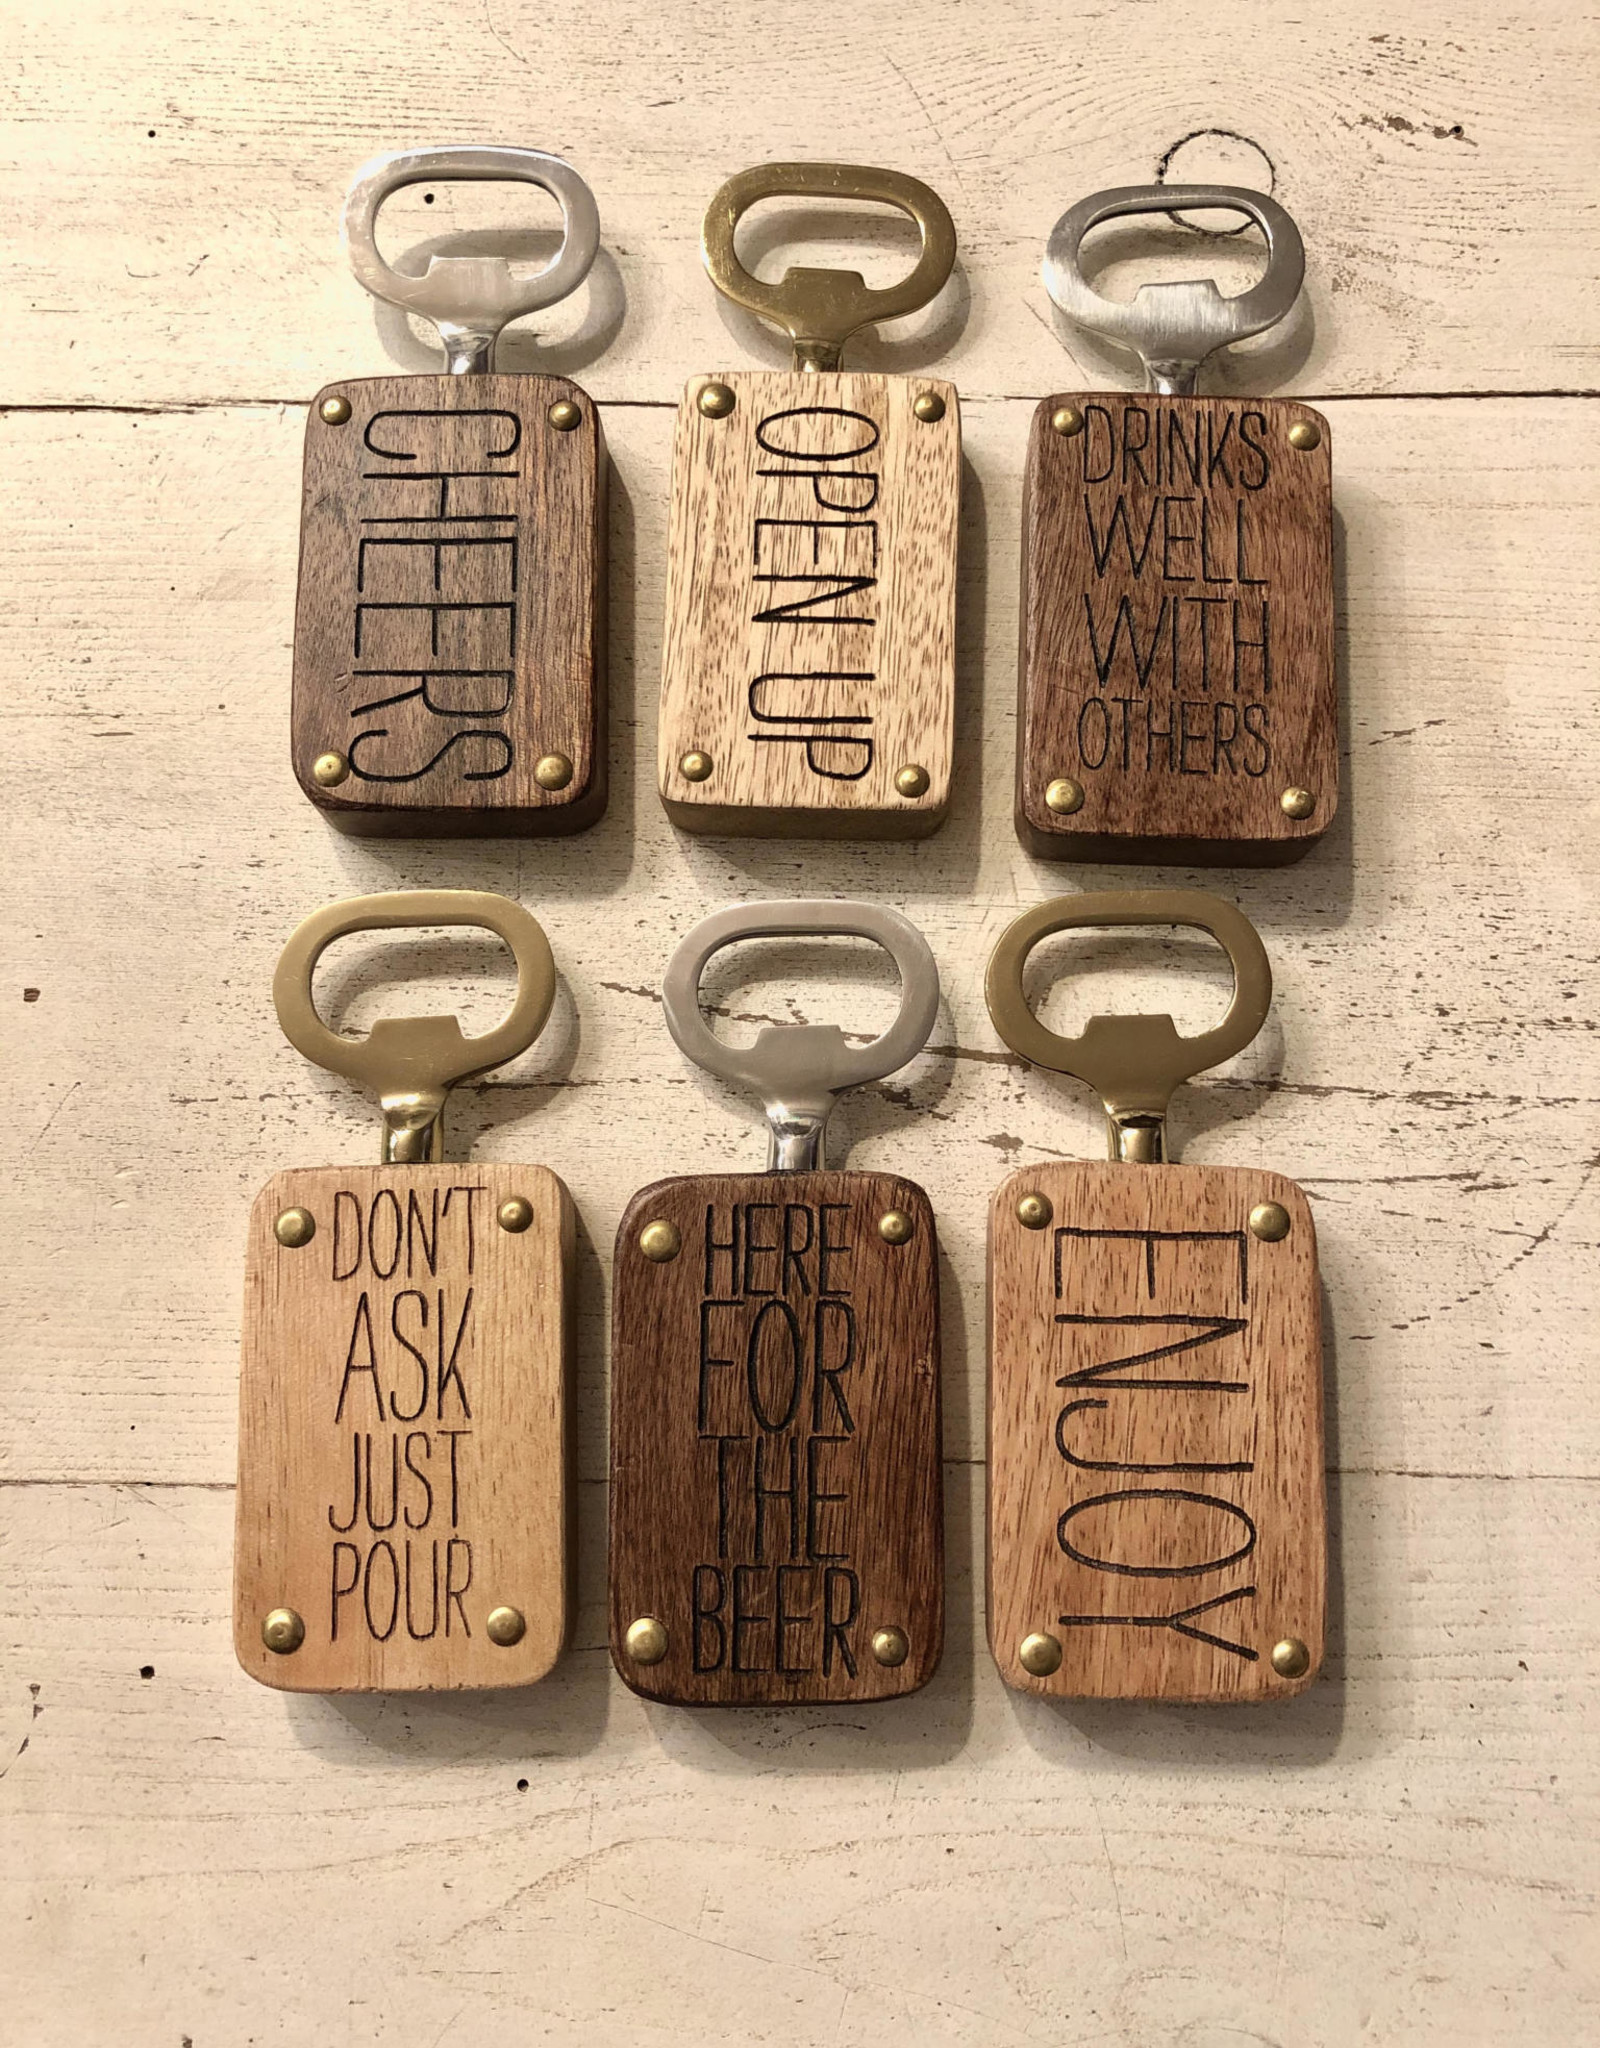 Wink Wood Bottle Opener